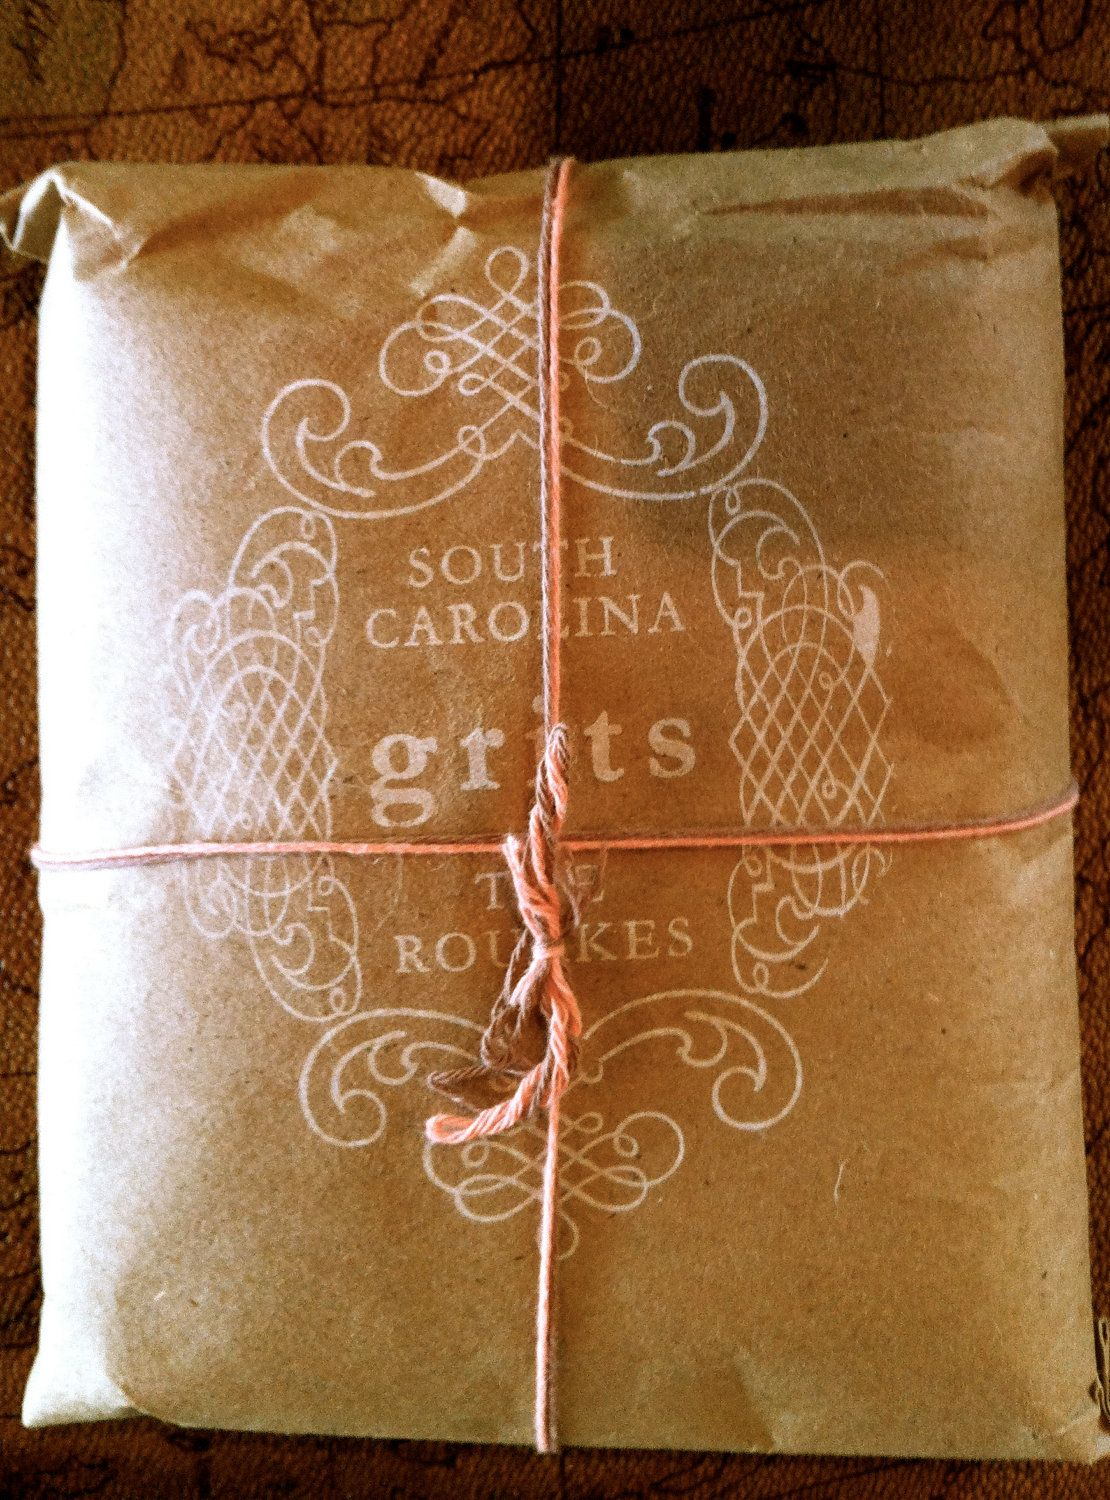 Kraft Packaged South Carolina Grits The Perfect Southern Wedding